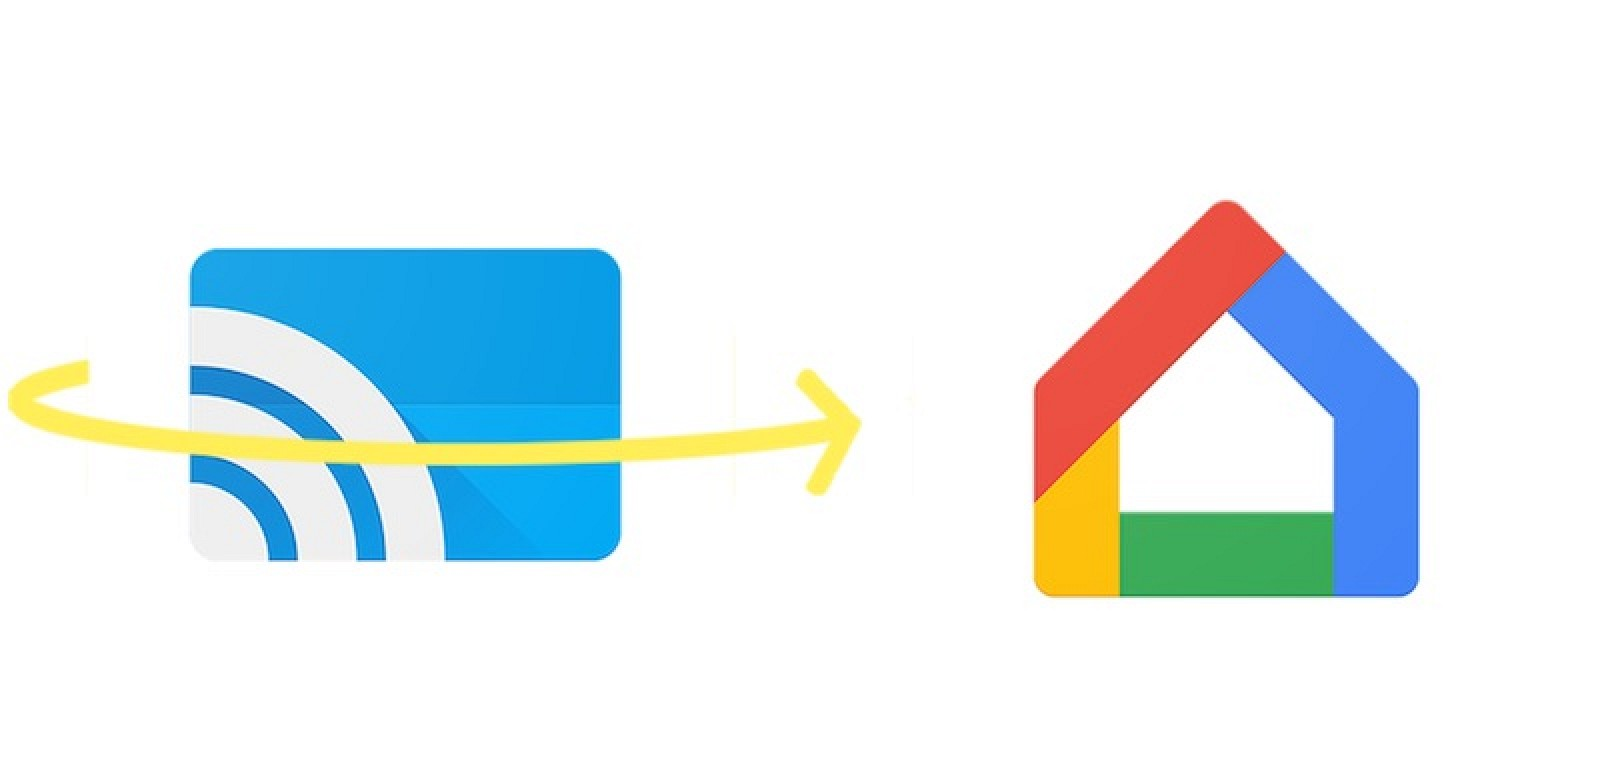 google cast app rebranded to coincide with impending launch of google home macrumors. Black Bedroom Furniture Sets. Home Design Ideas